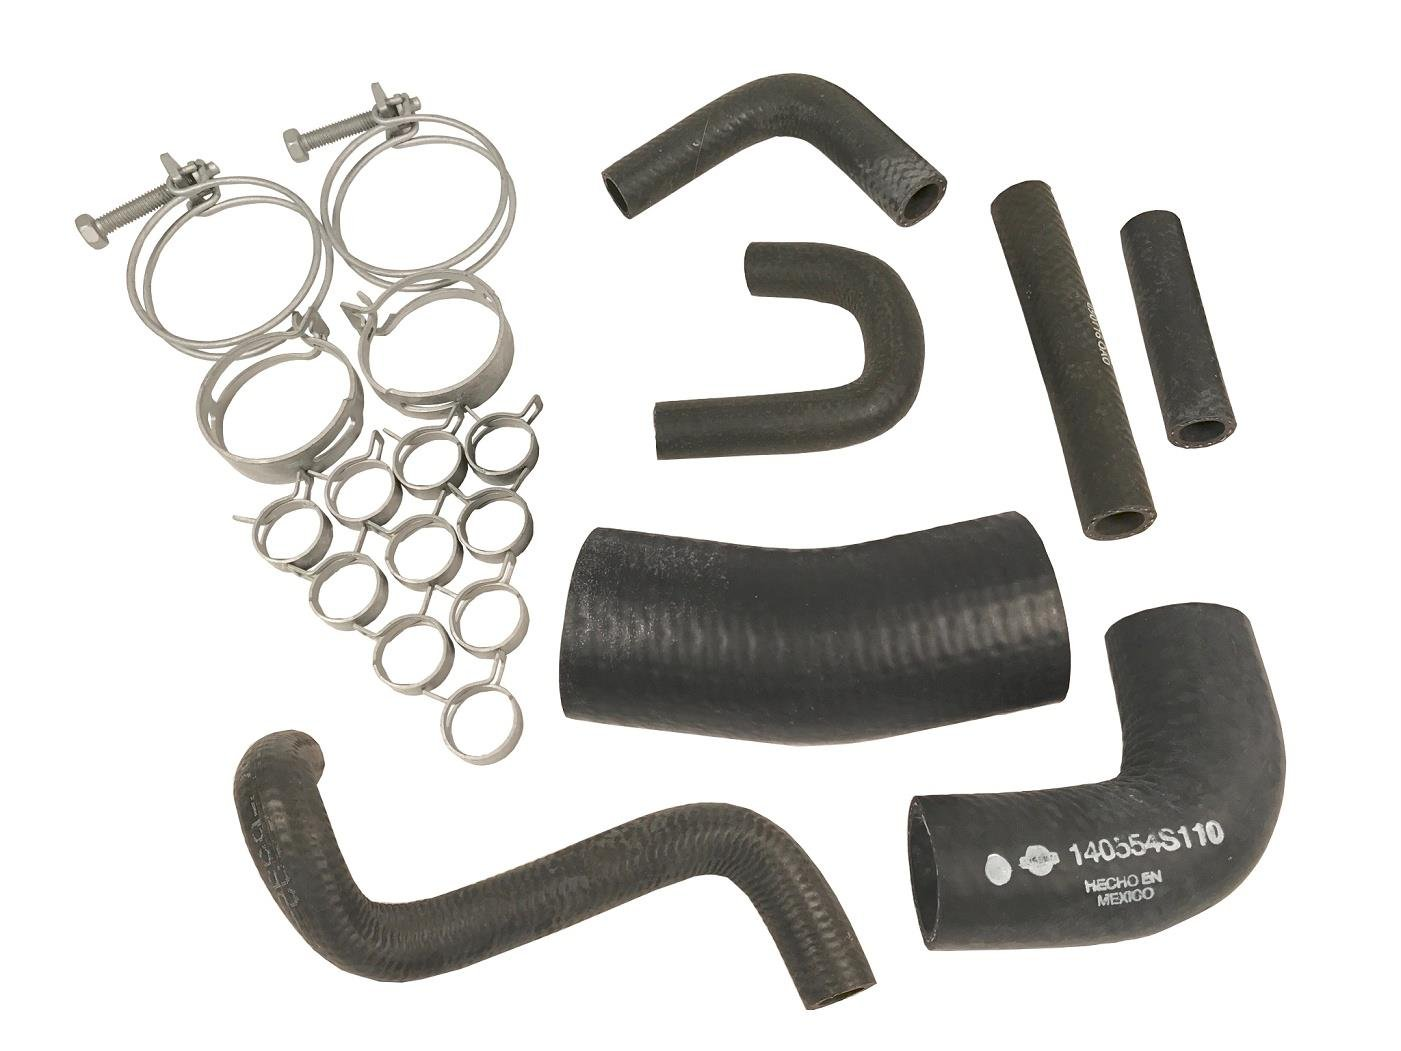 Genuine Nissan OEM Water Hose Replacement Kit 2002 Frontier/Xterra (3.3 V6)